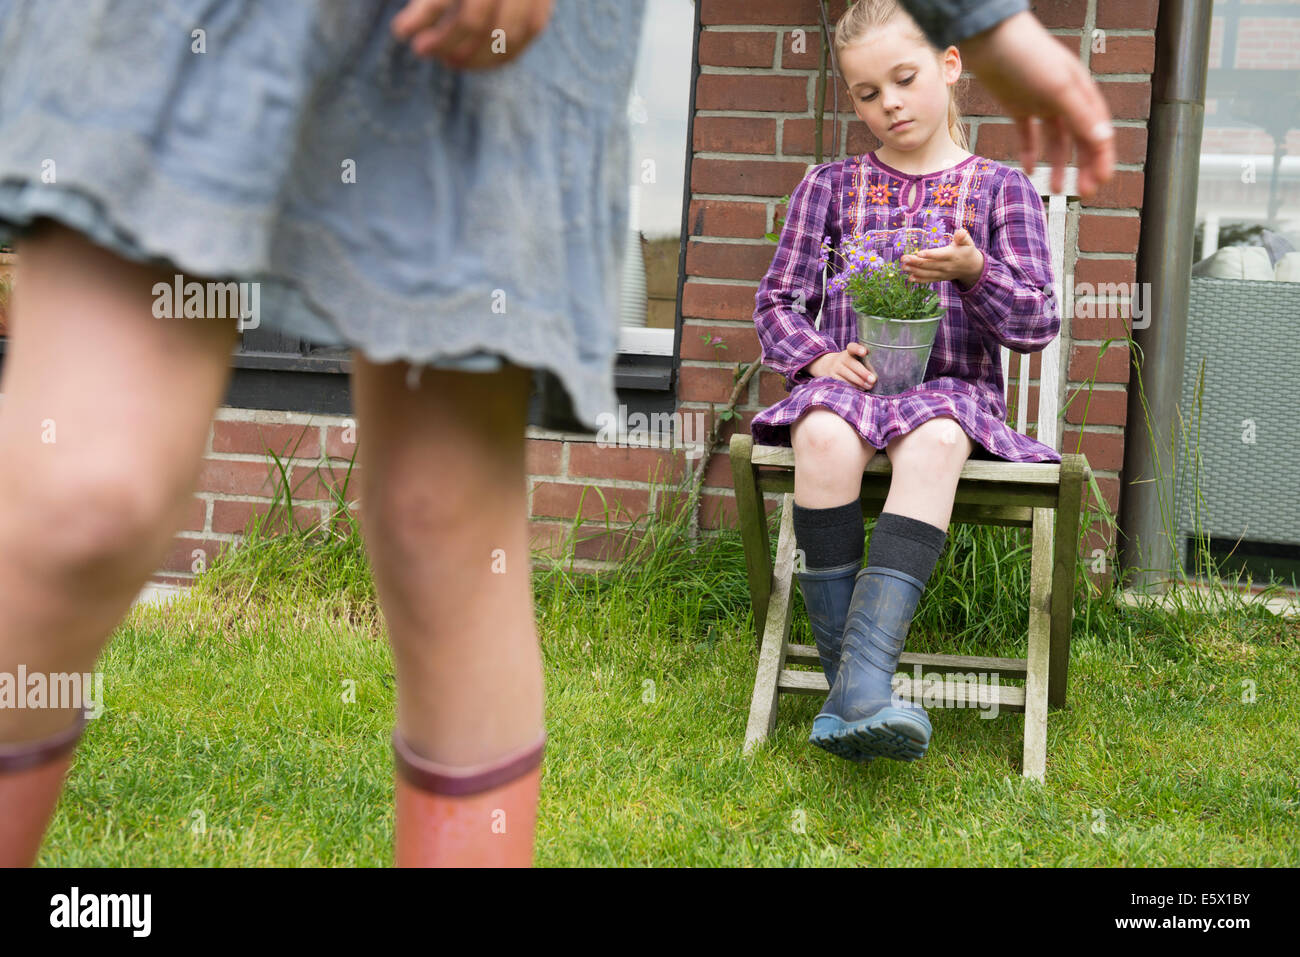 Girl on garden seat gazing at flower pot plant - Stock Image